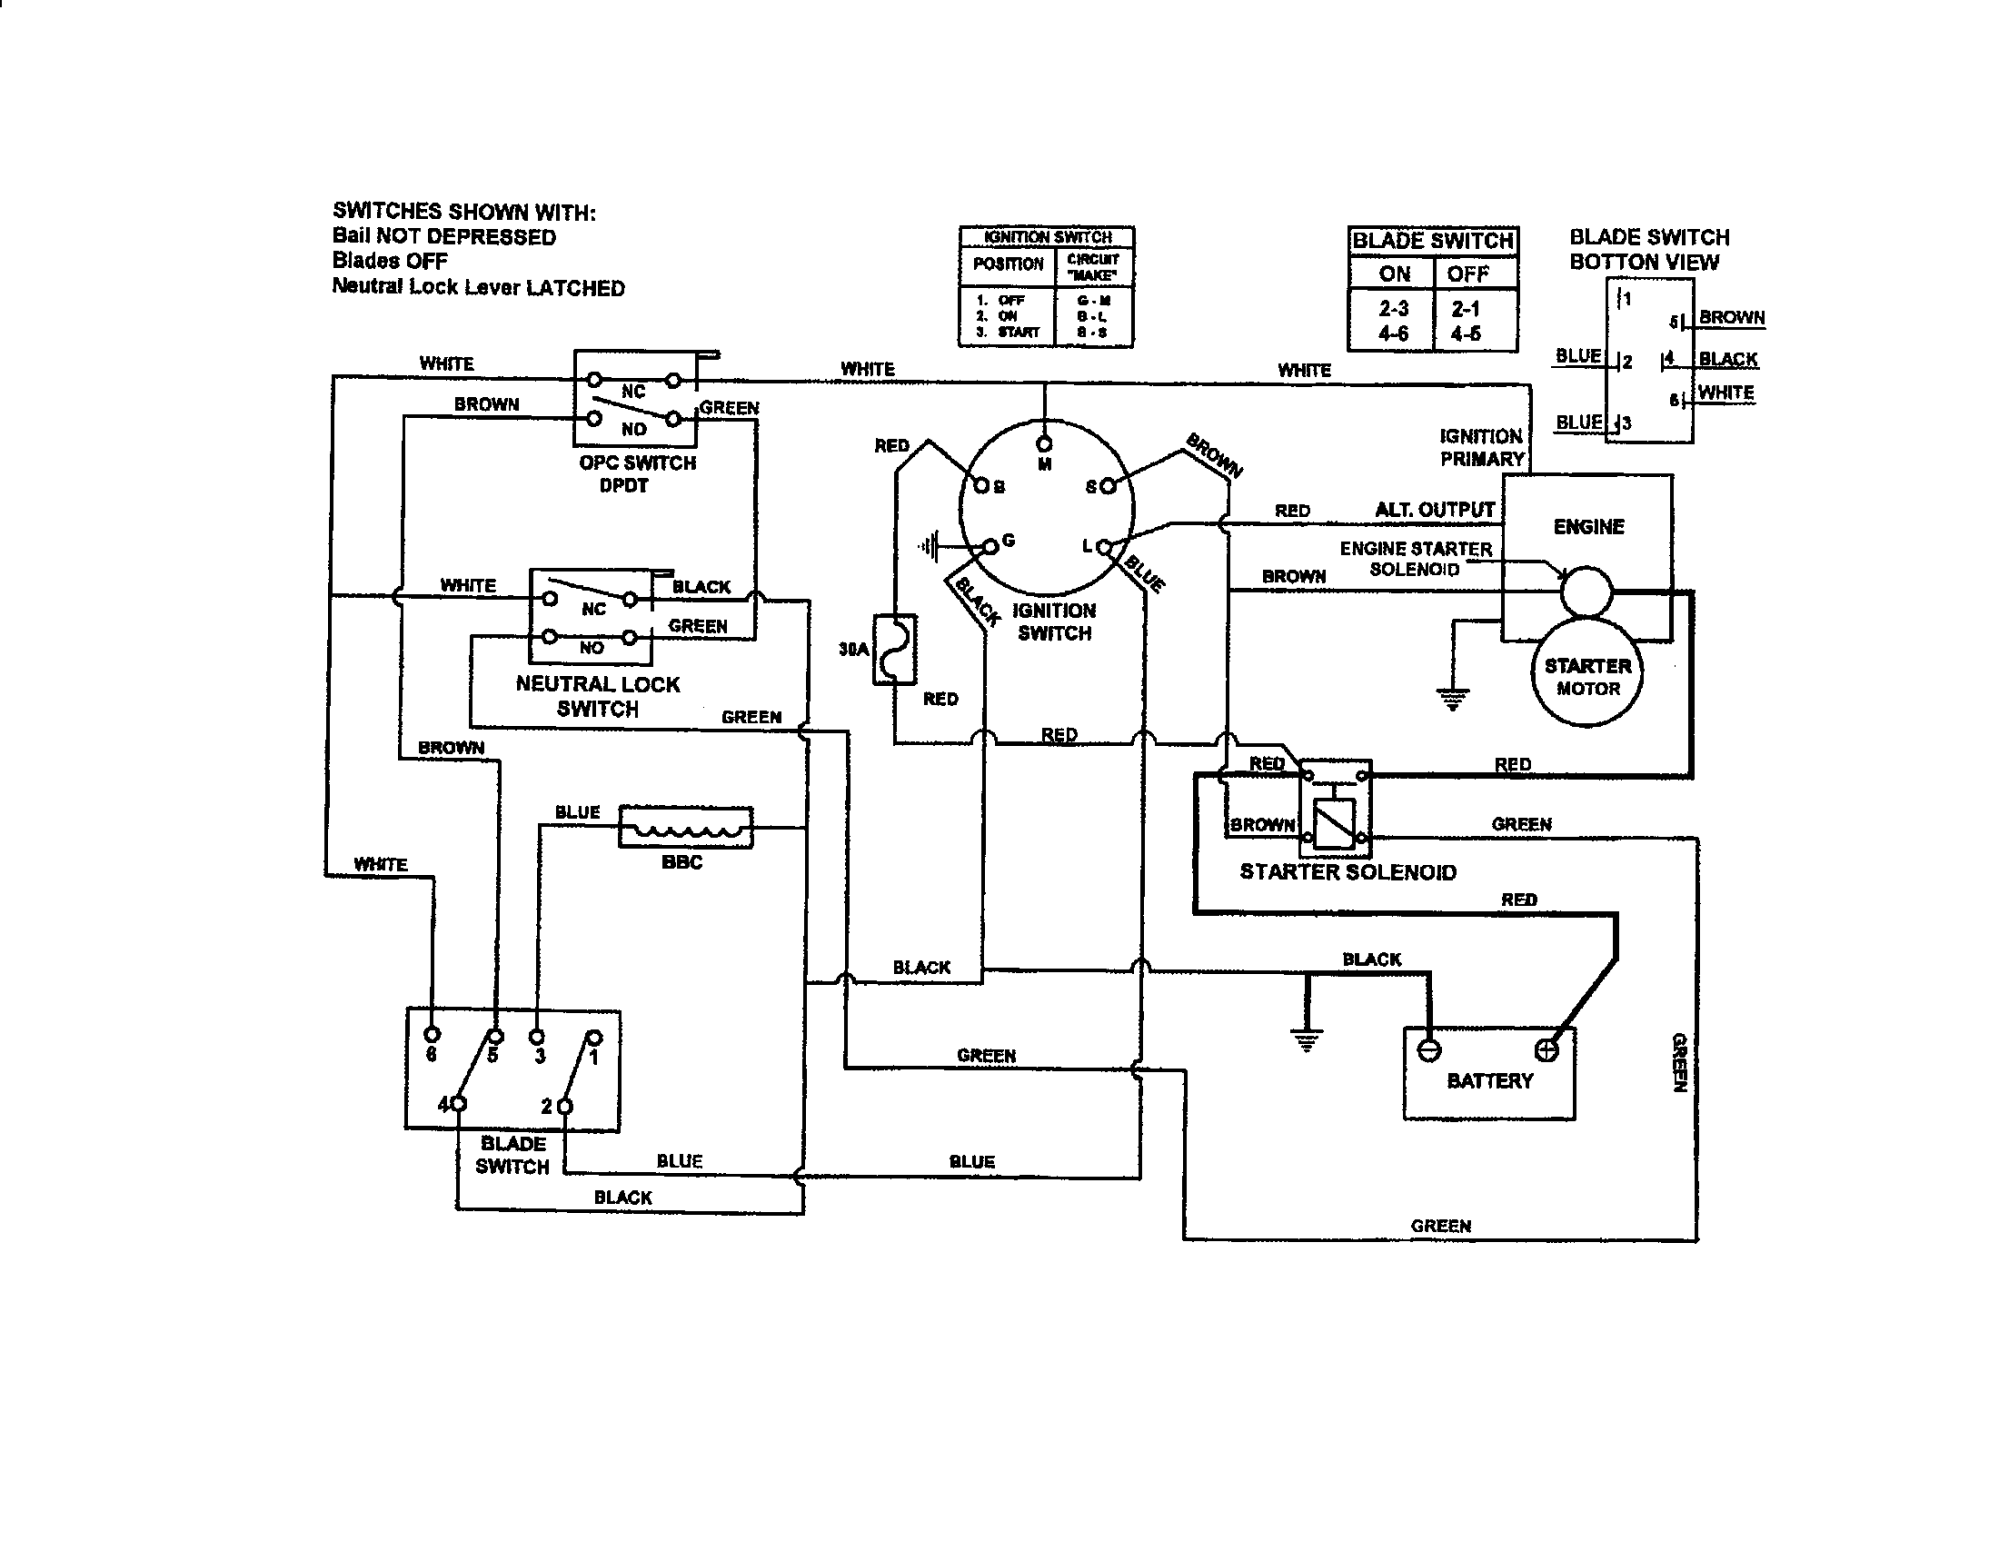 hight resolution of snapper spa610 series 1 2 wiring schematic electric start diagram